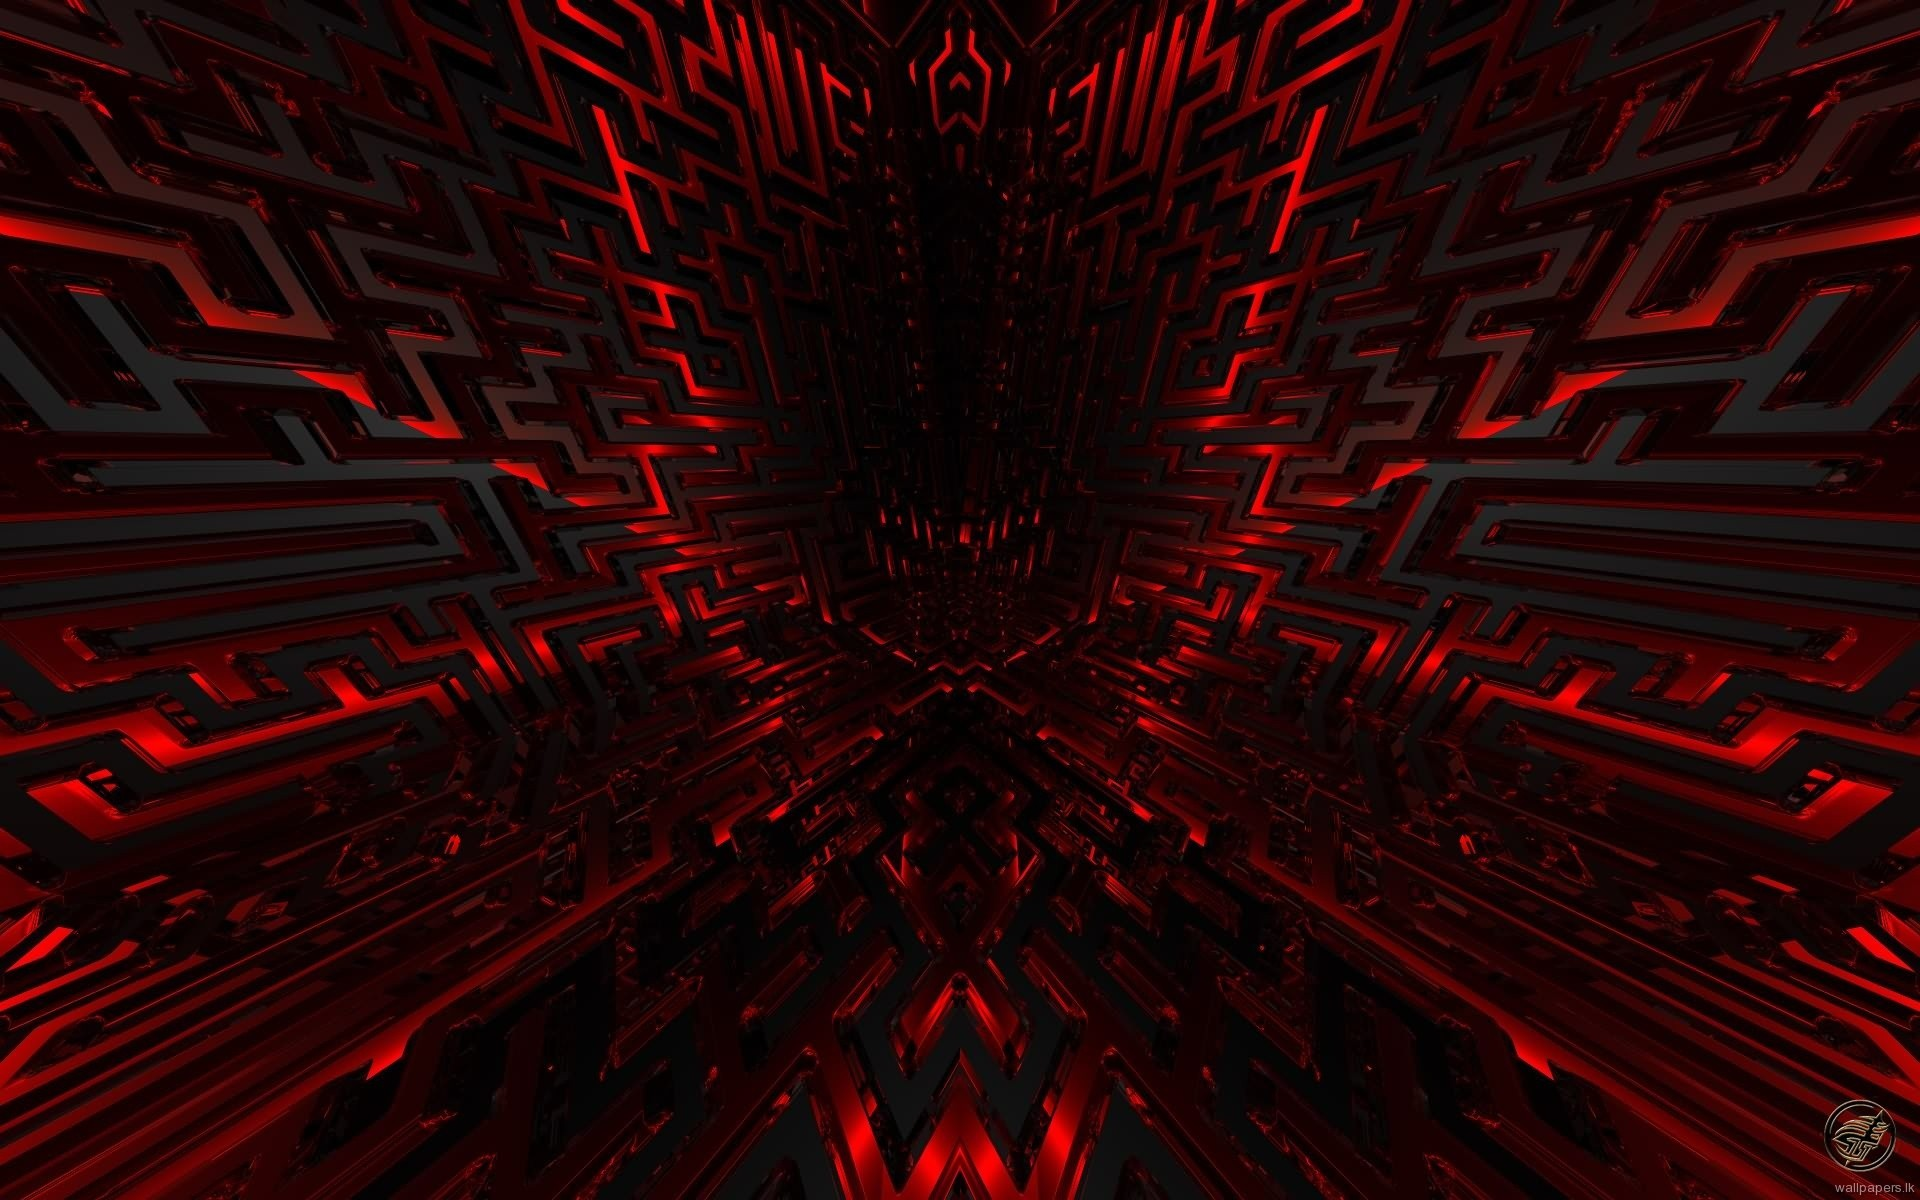 Iphone Wallpaper Black And Red 10 Free Hd Wallpaper